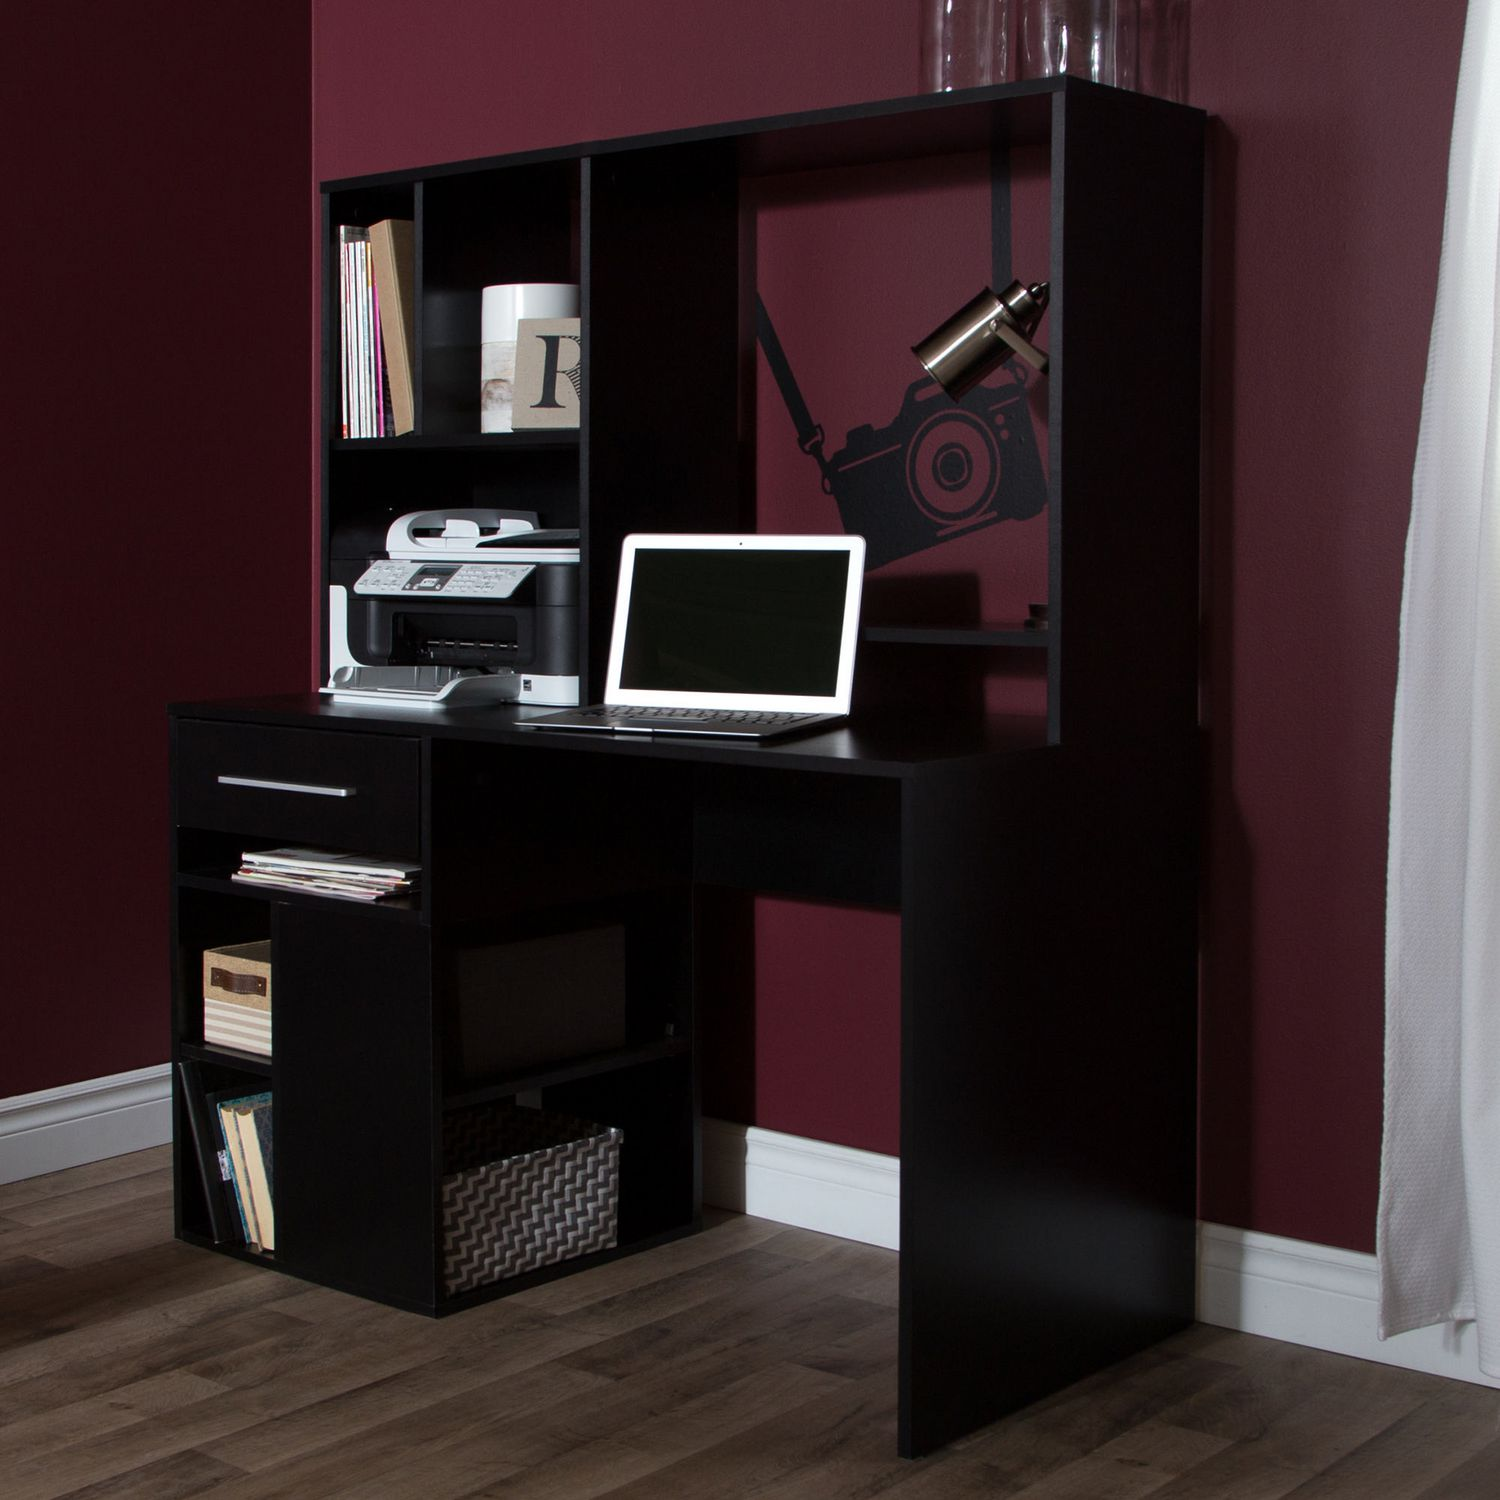 keyboard black hutch plus floor furniture interior cabinet file narrow corner station drawers desk magnificent storage computer for on placed wooden also and with home office shelf book as tall well